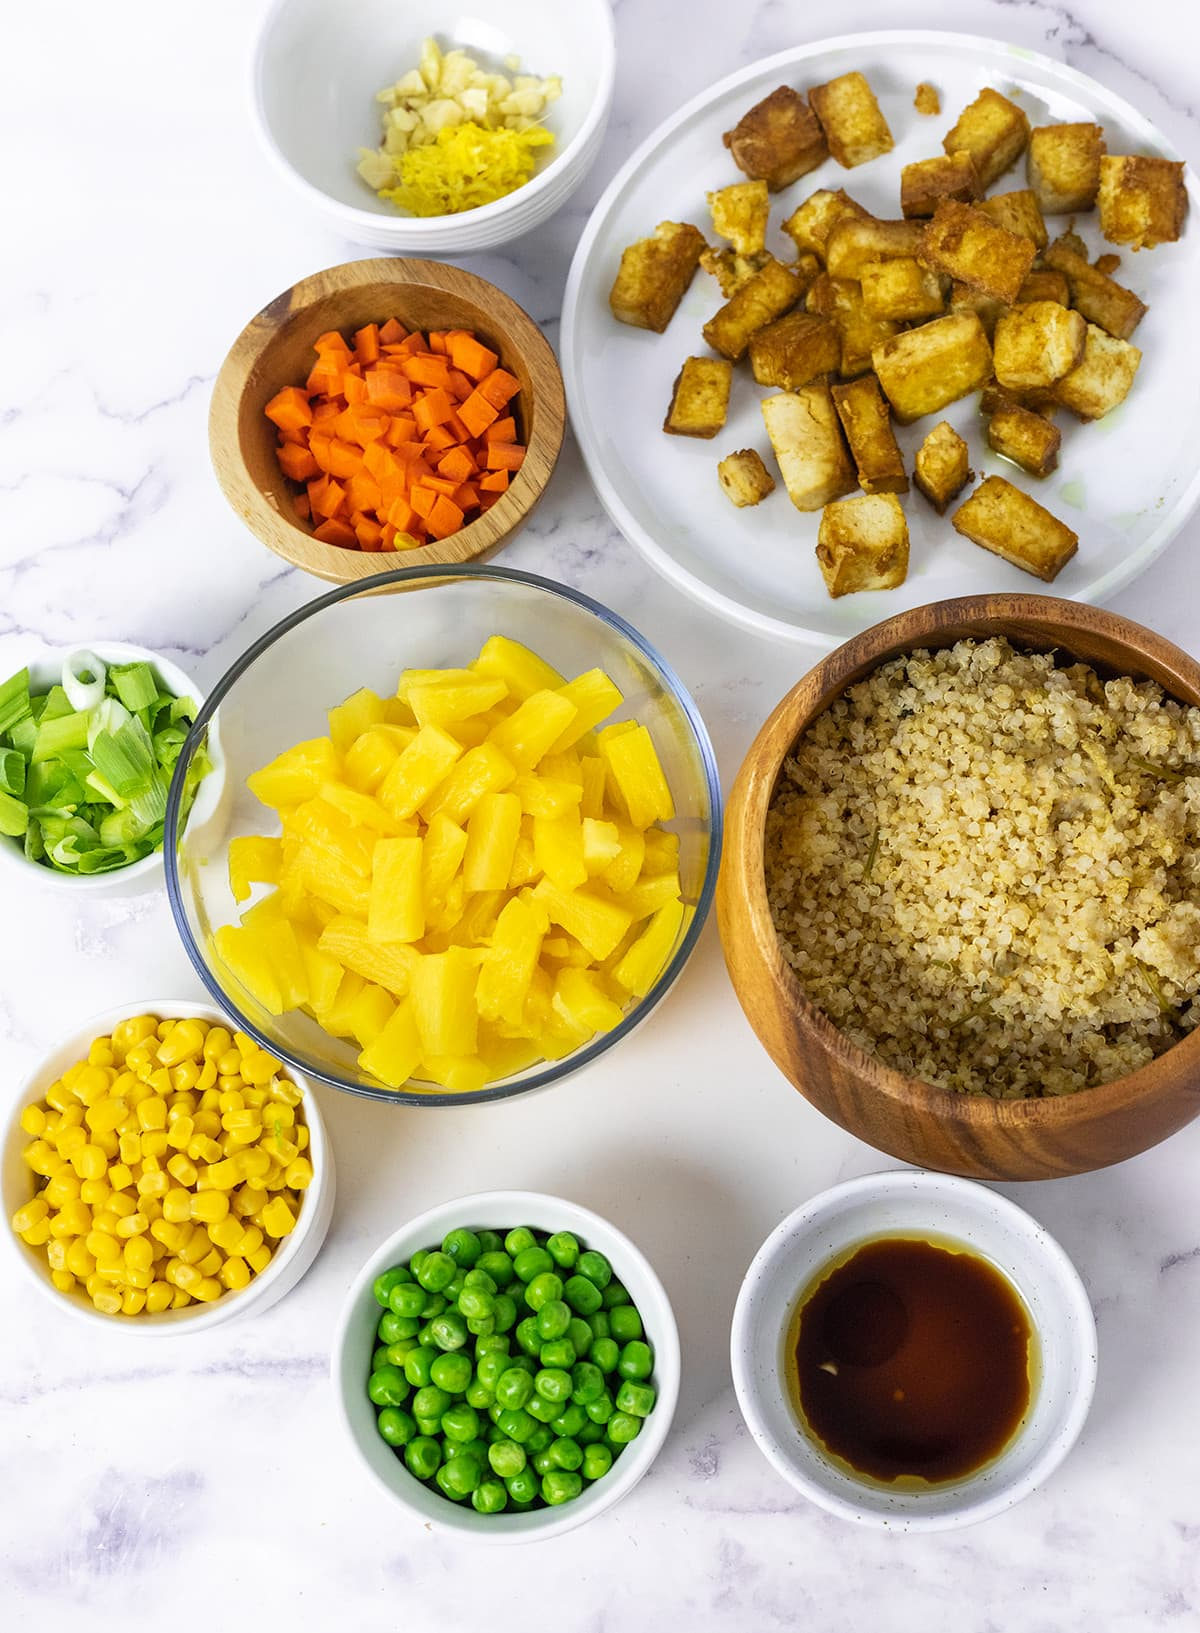 Pineapple Fried Quinoa ingredients on a white background in containers